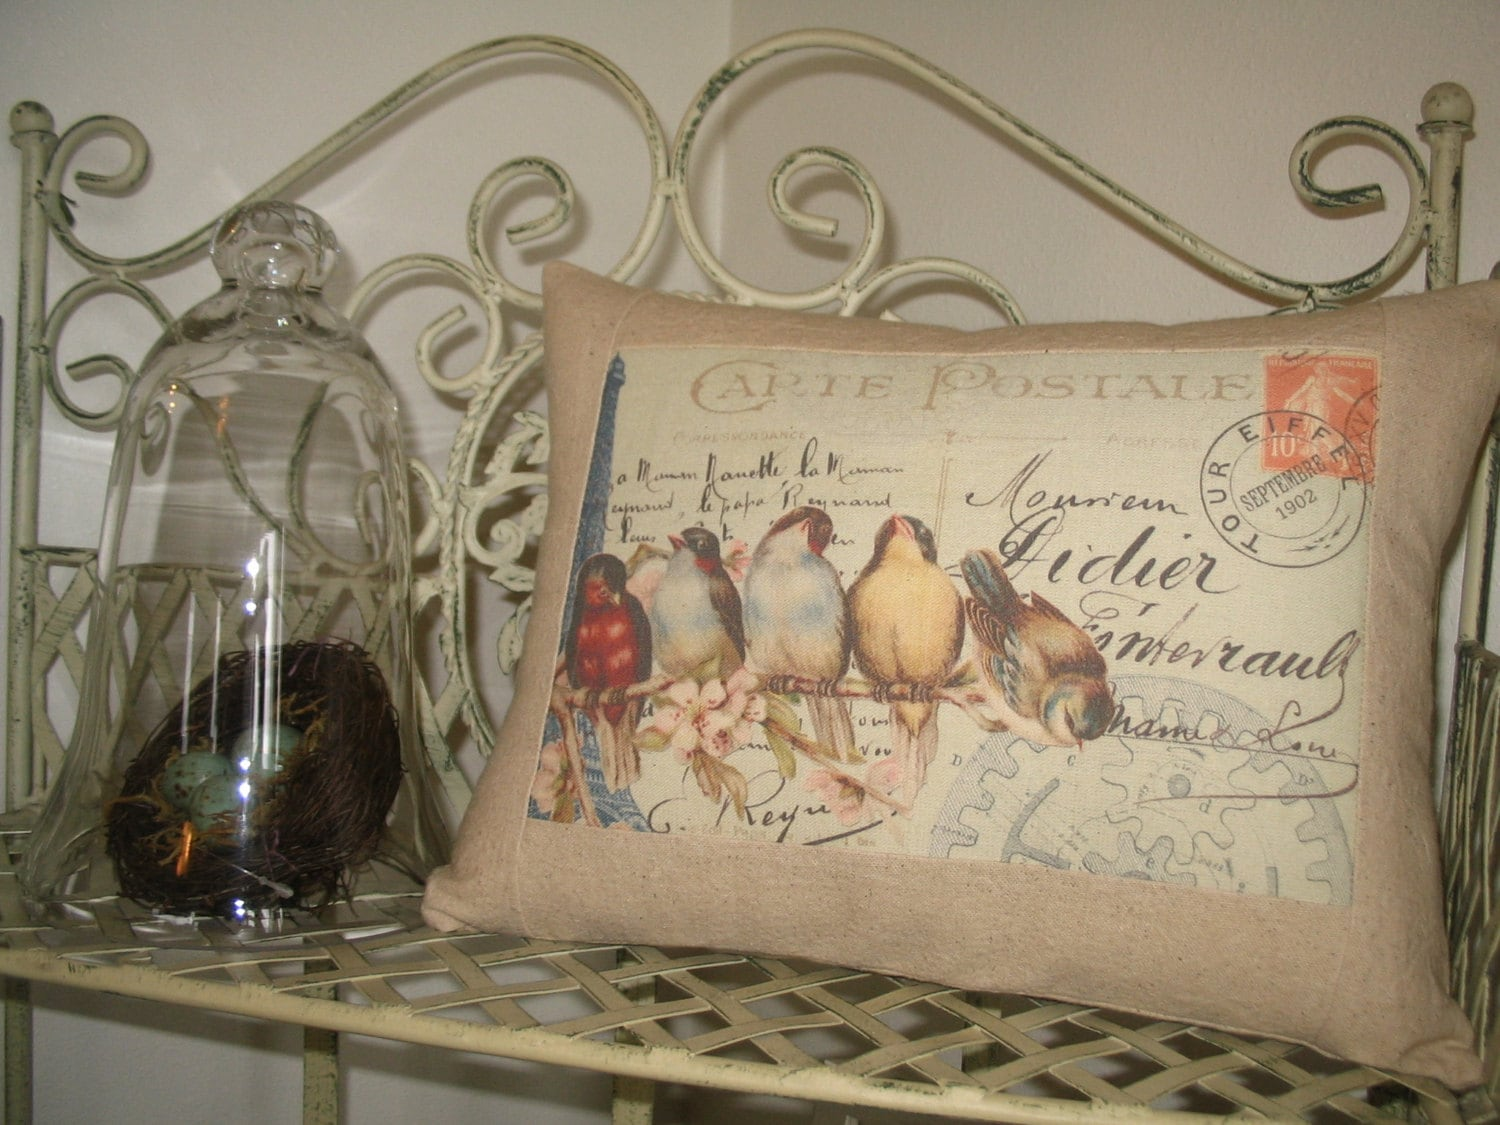 carte postale french bird throw pillow with french script. Black Bedroom Furniture Sets. Home Design Ideas